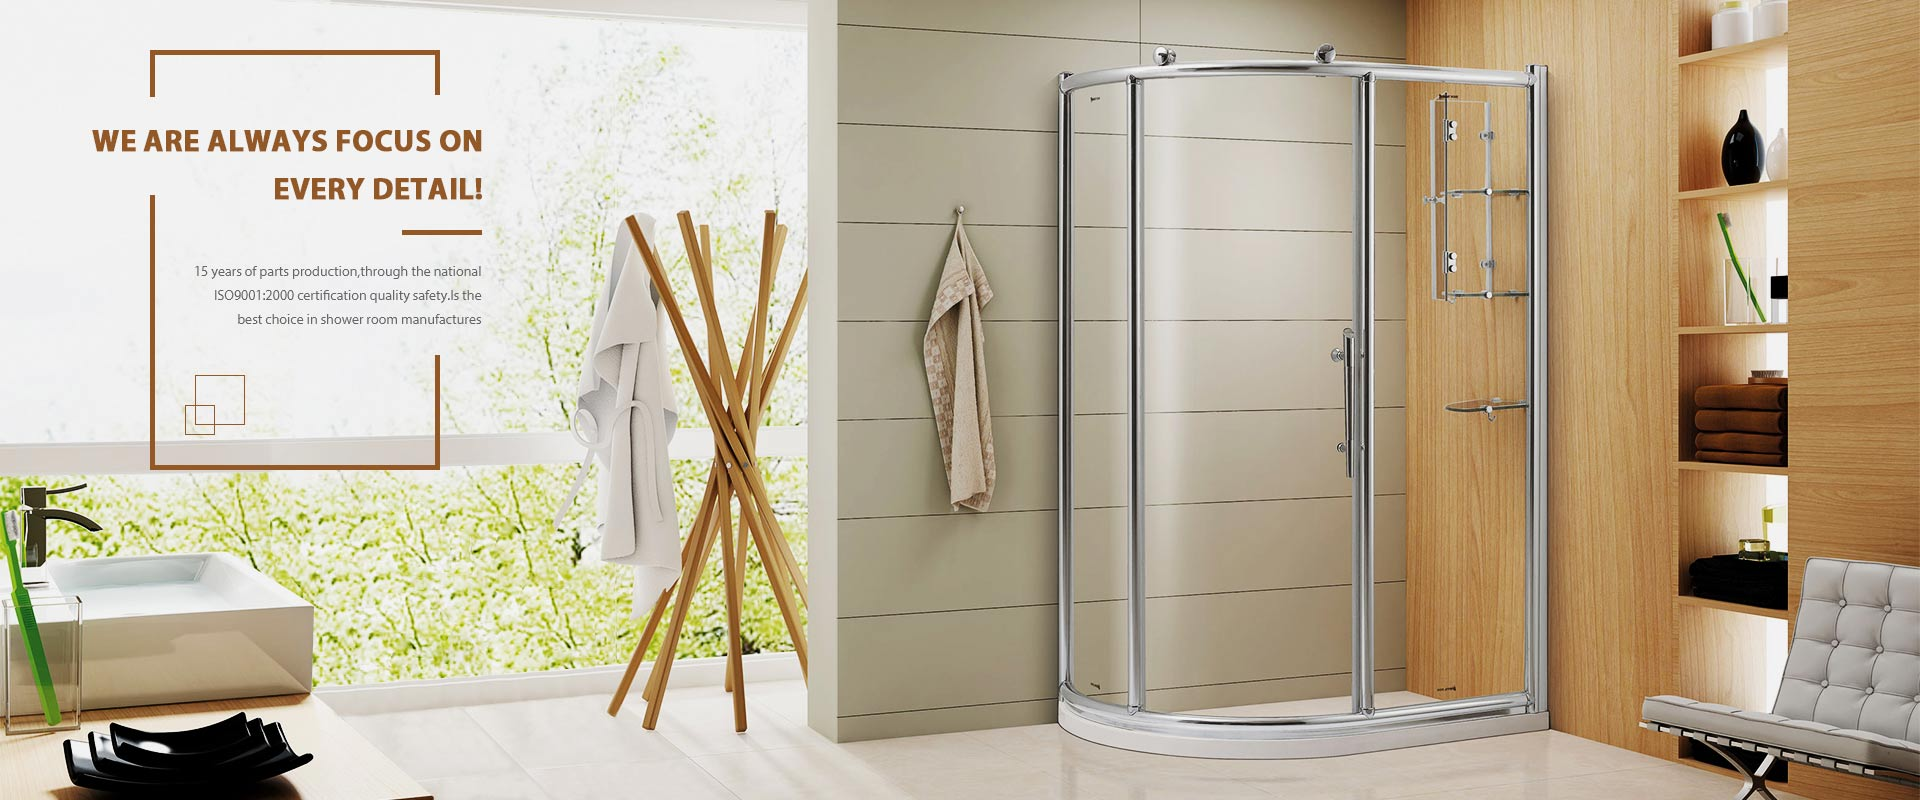 shower enclosure products